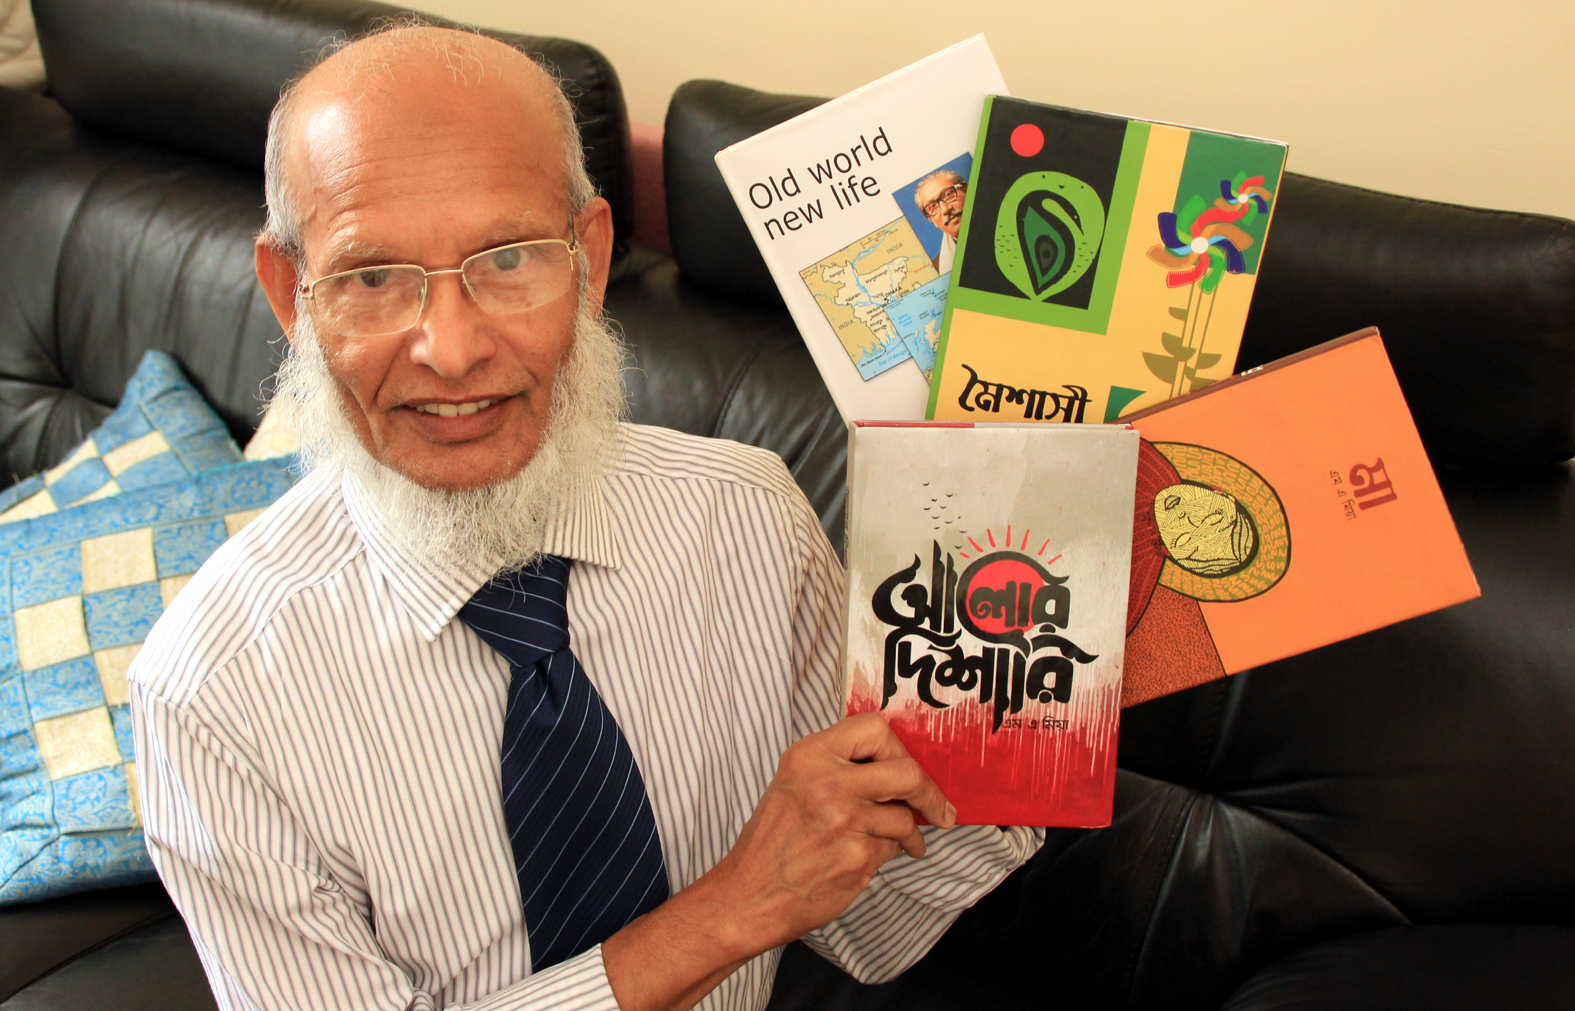 Bangladeshi-born author's work inspires people from former country